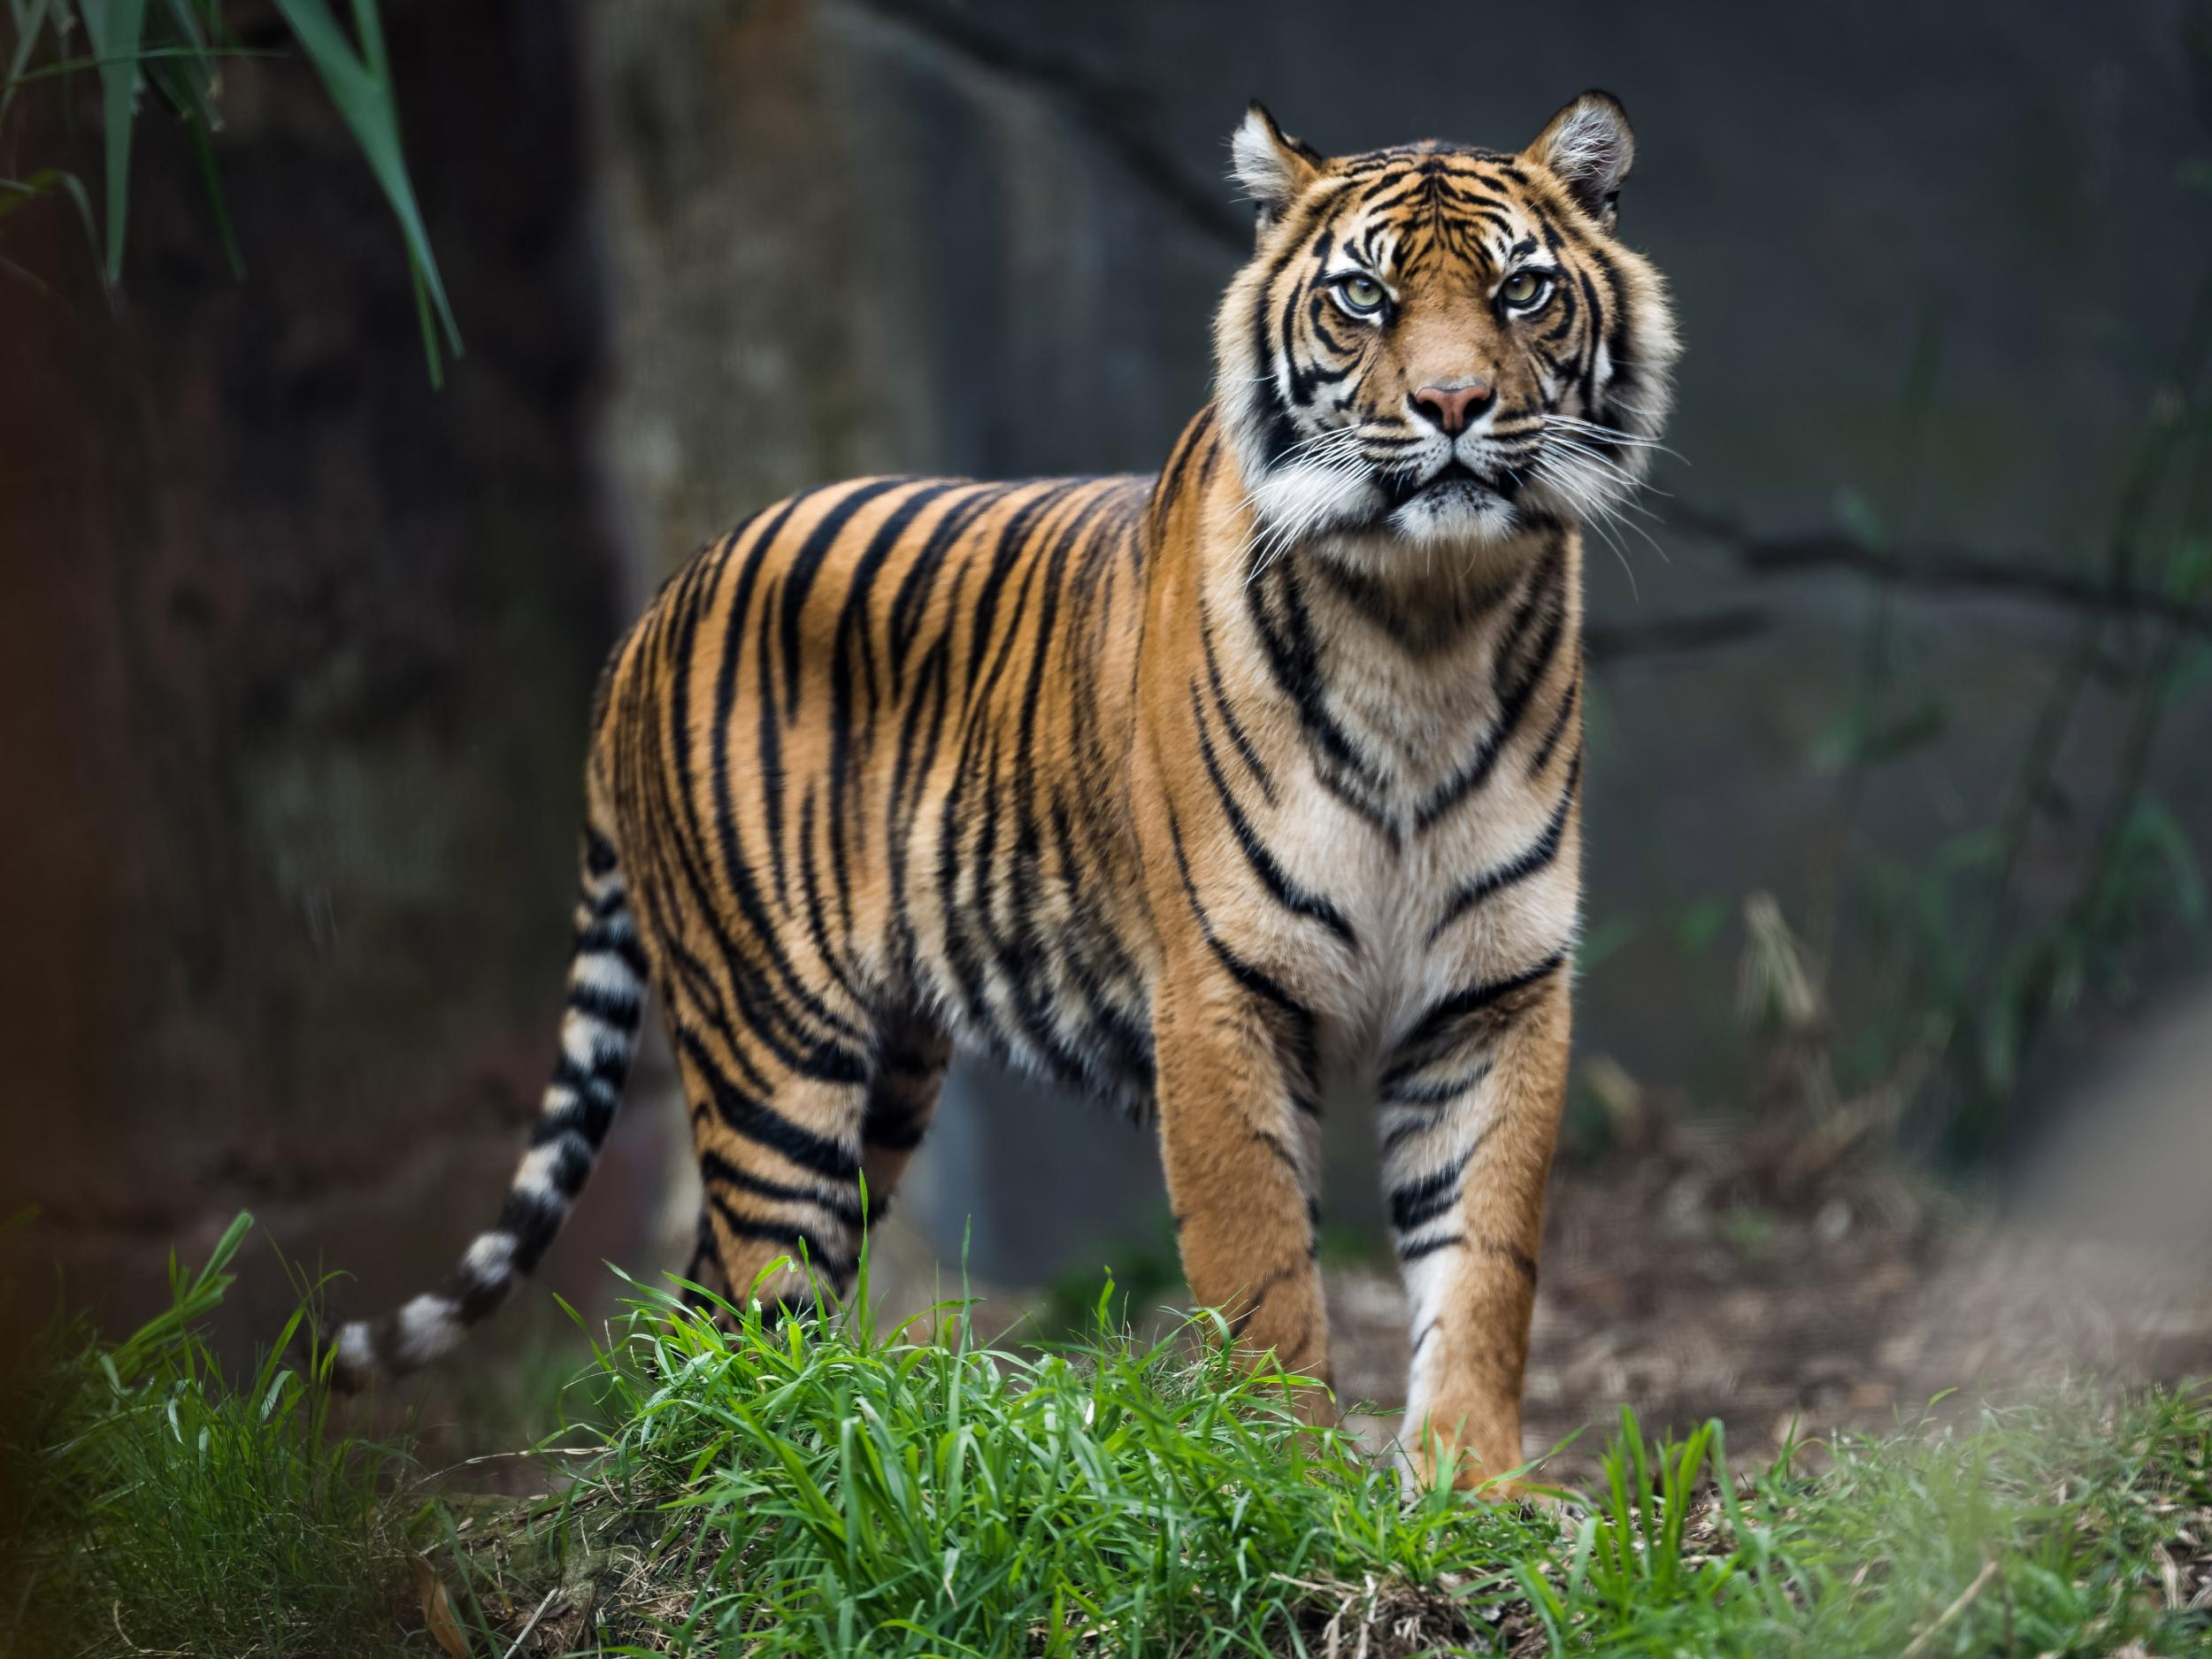 Reclassifying remaining 4,000 tigers in world could help save them from extinction, research says